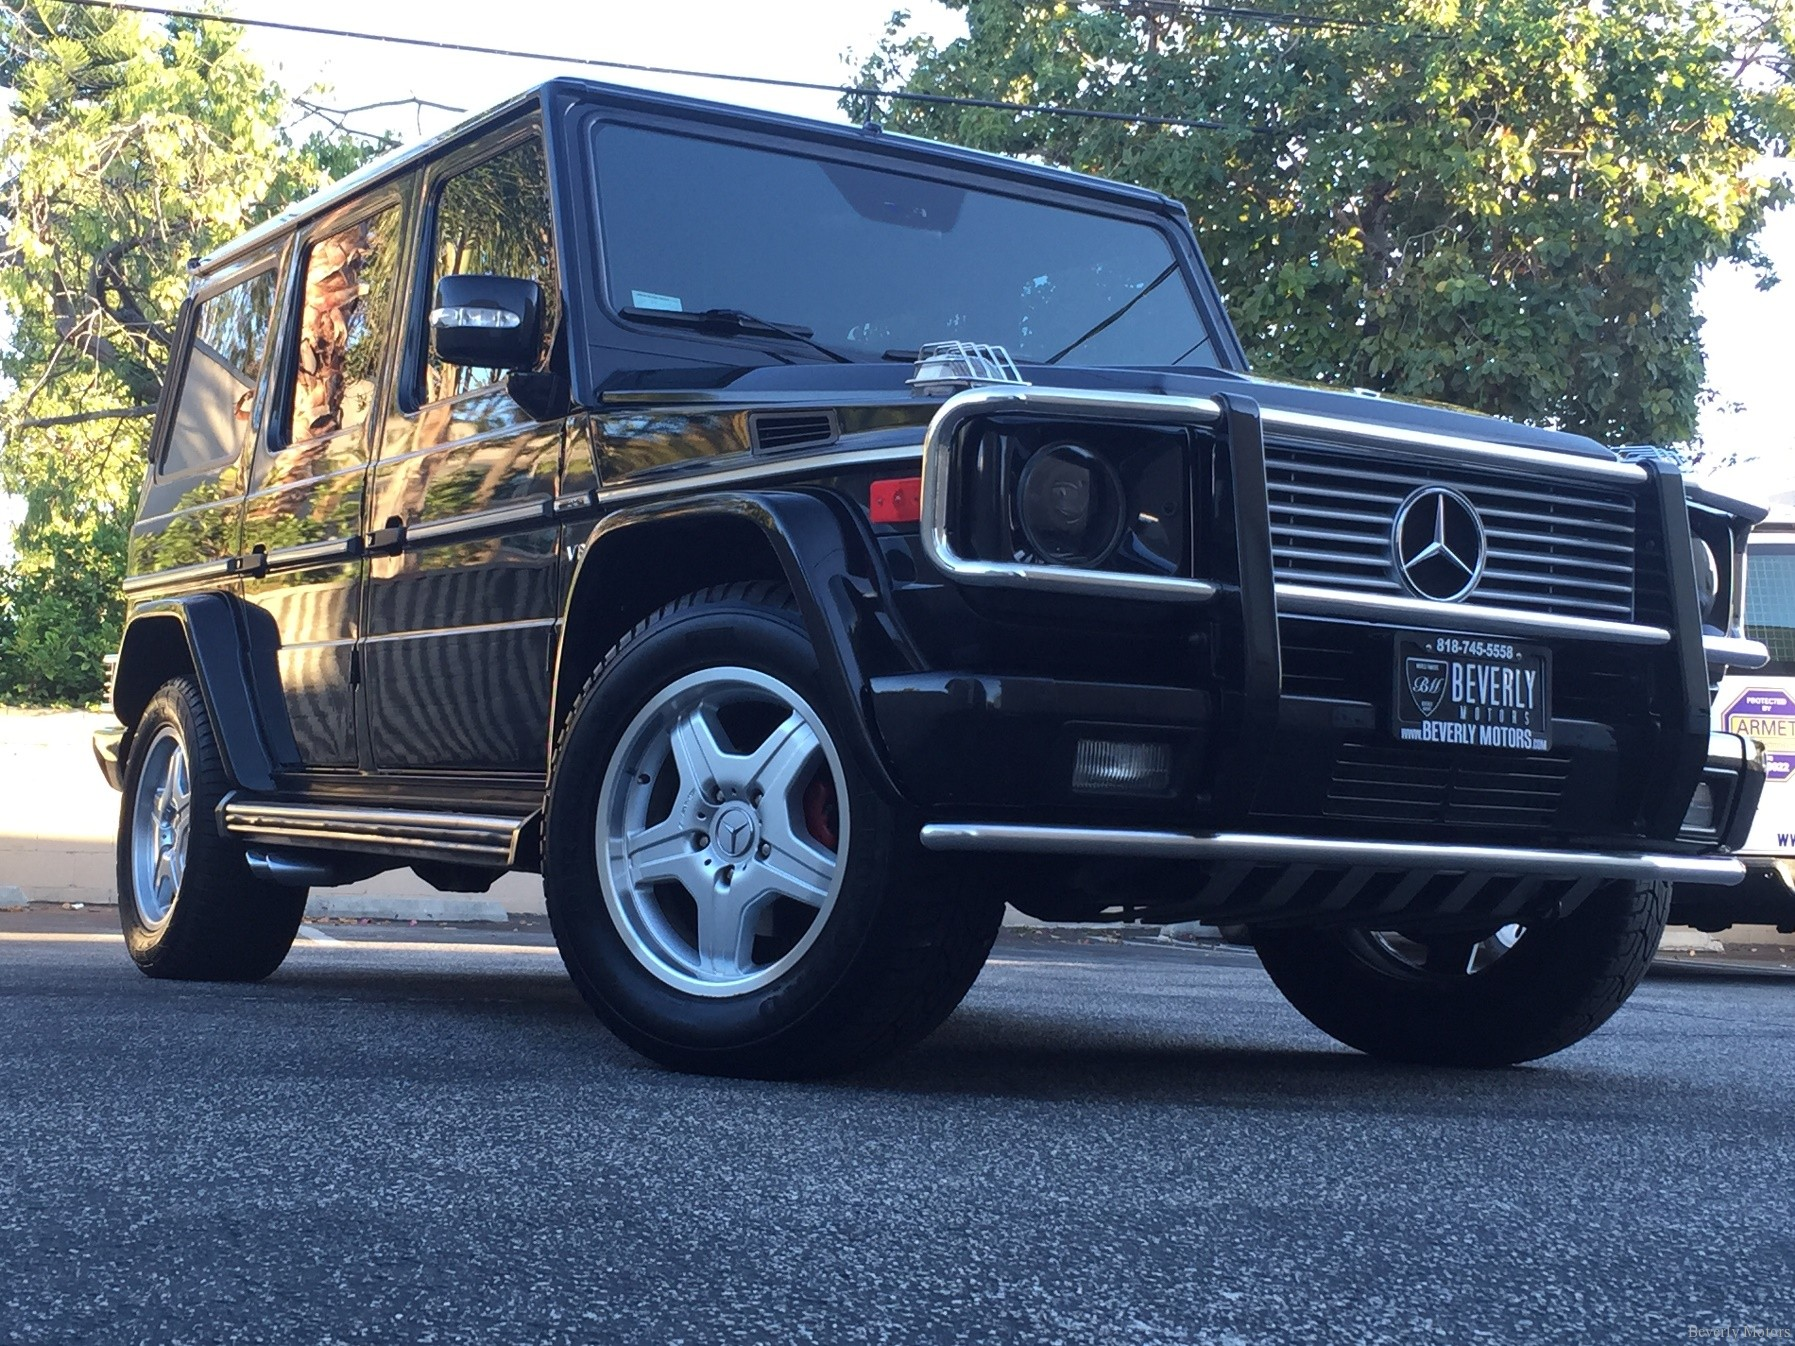 However this one is a true g55 which was only designed for 2003 and 2004 with less issues non supercharged engines all sales are final and no returns